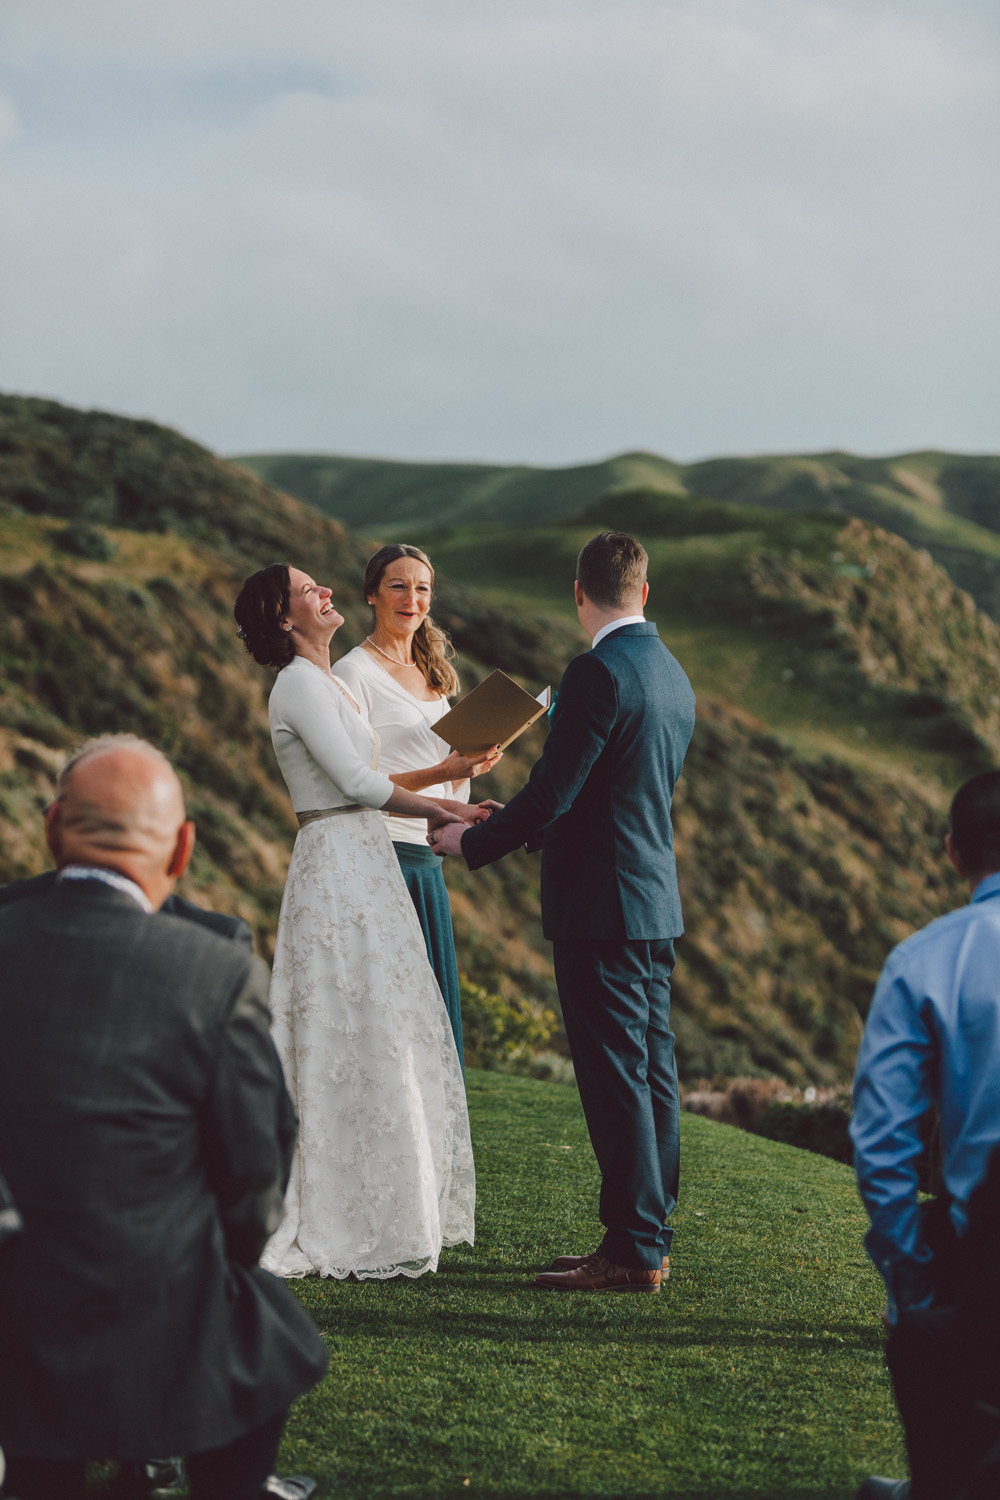 BOOMROCK_WEDDING_WELLINGTON_042.jpg